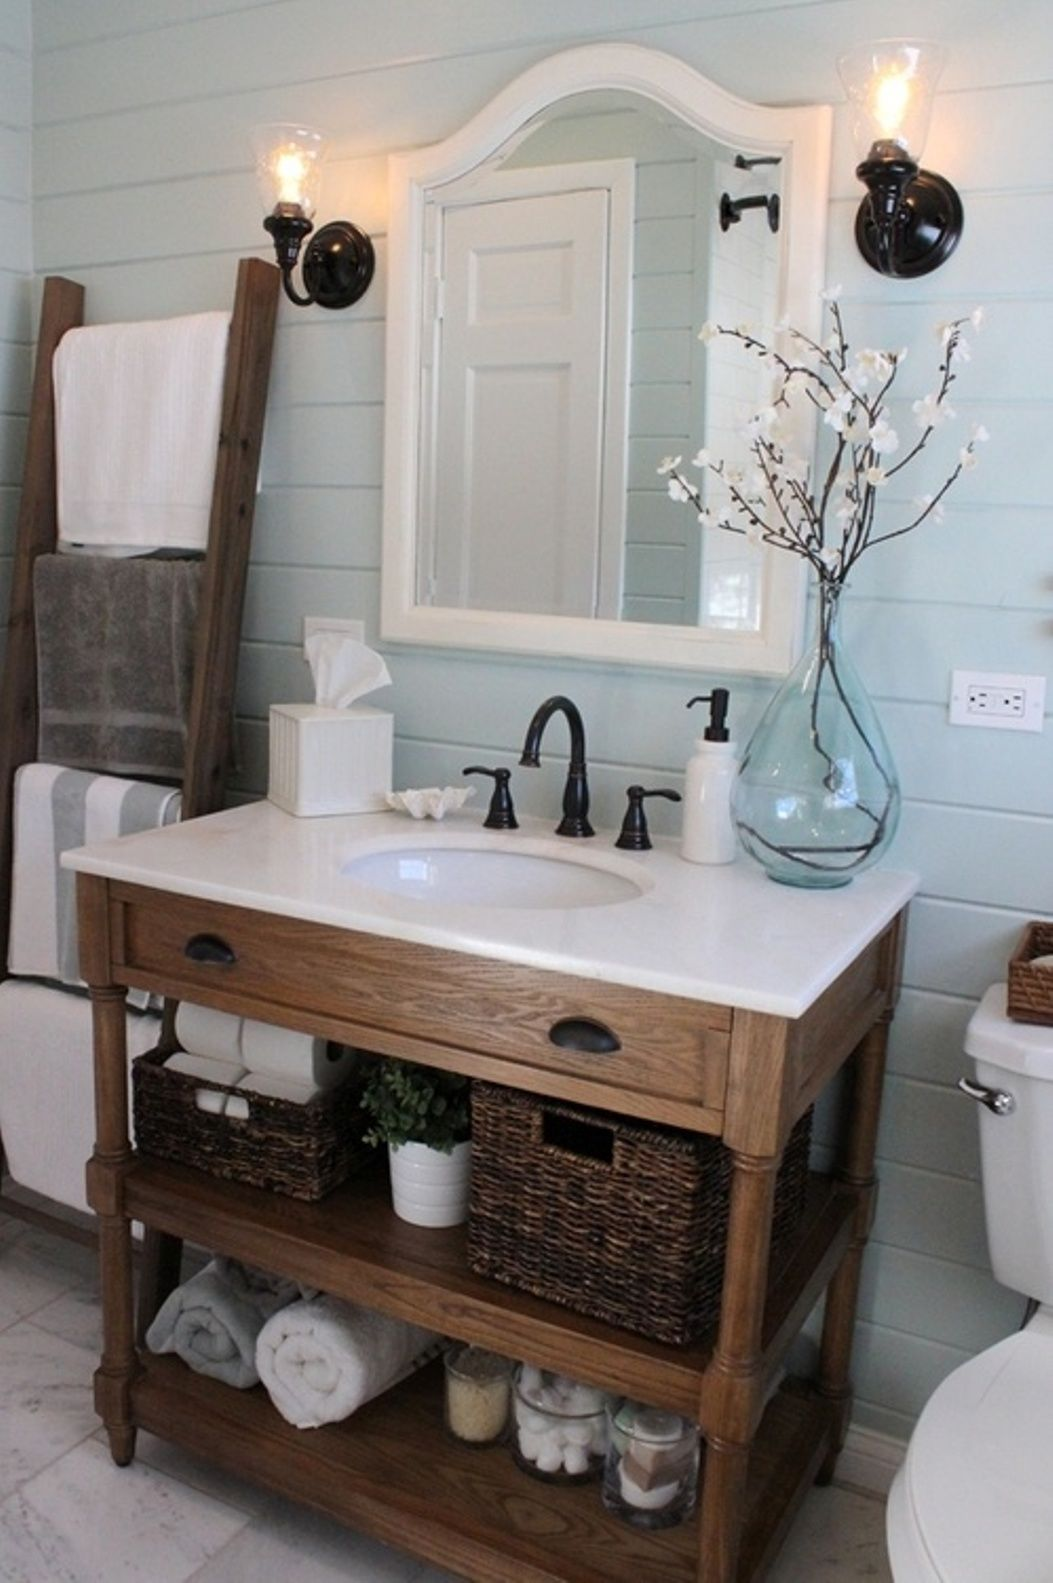 Design Rustic Bathroom 17 inspiring rustic bathroom decor ideas for cozy home style home